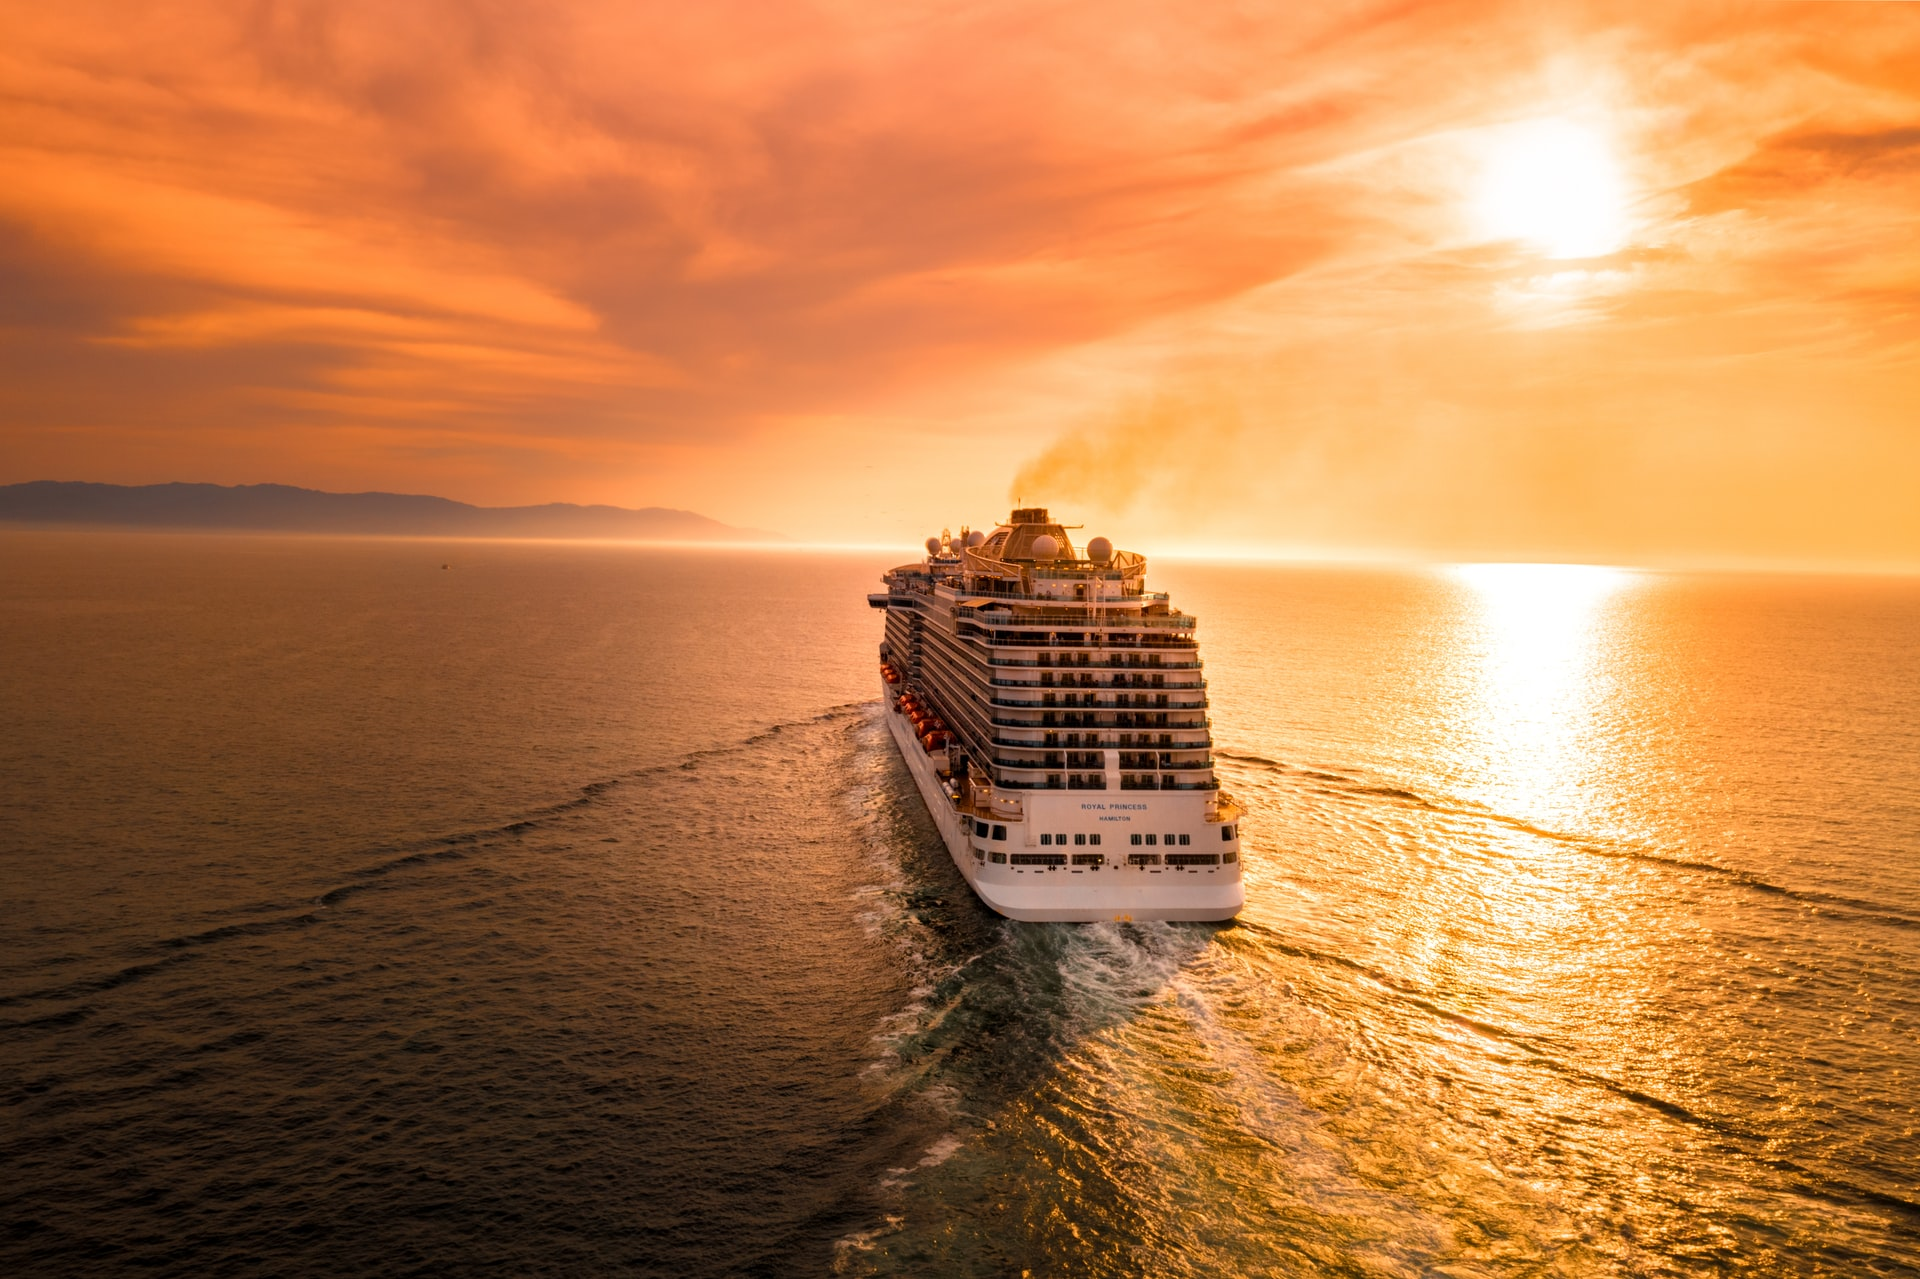 Cruise Lines Resume Operations, But Consumer Uncertainties Linger